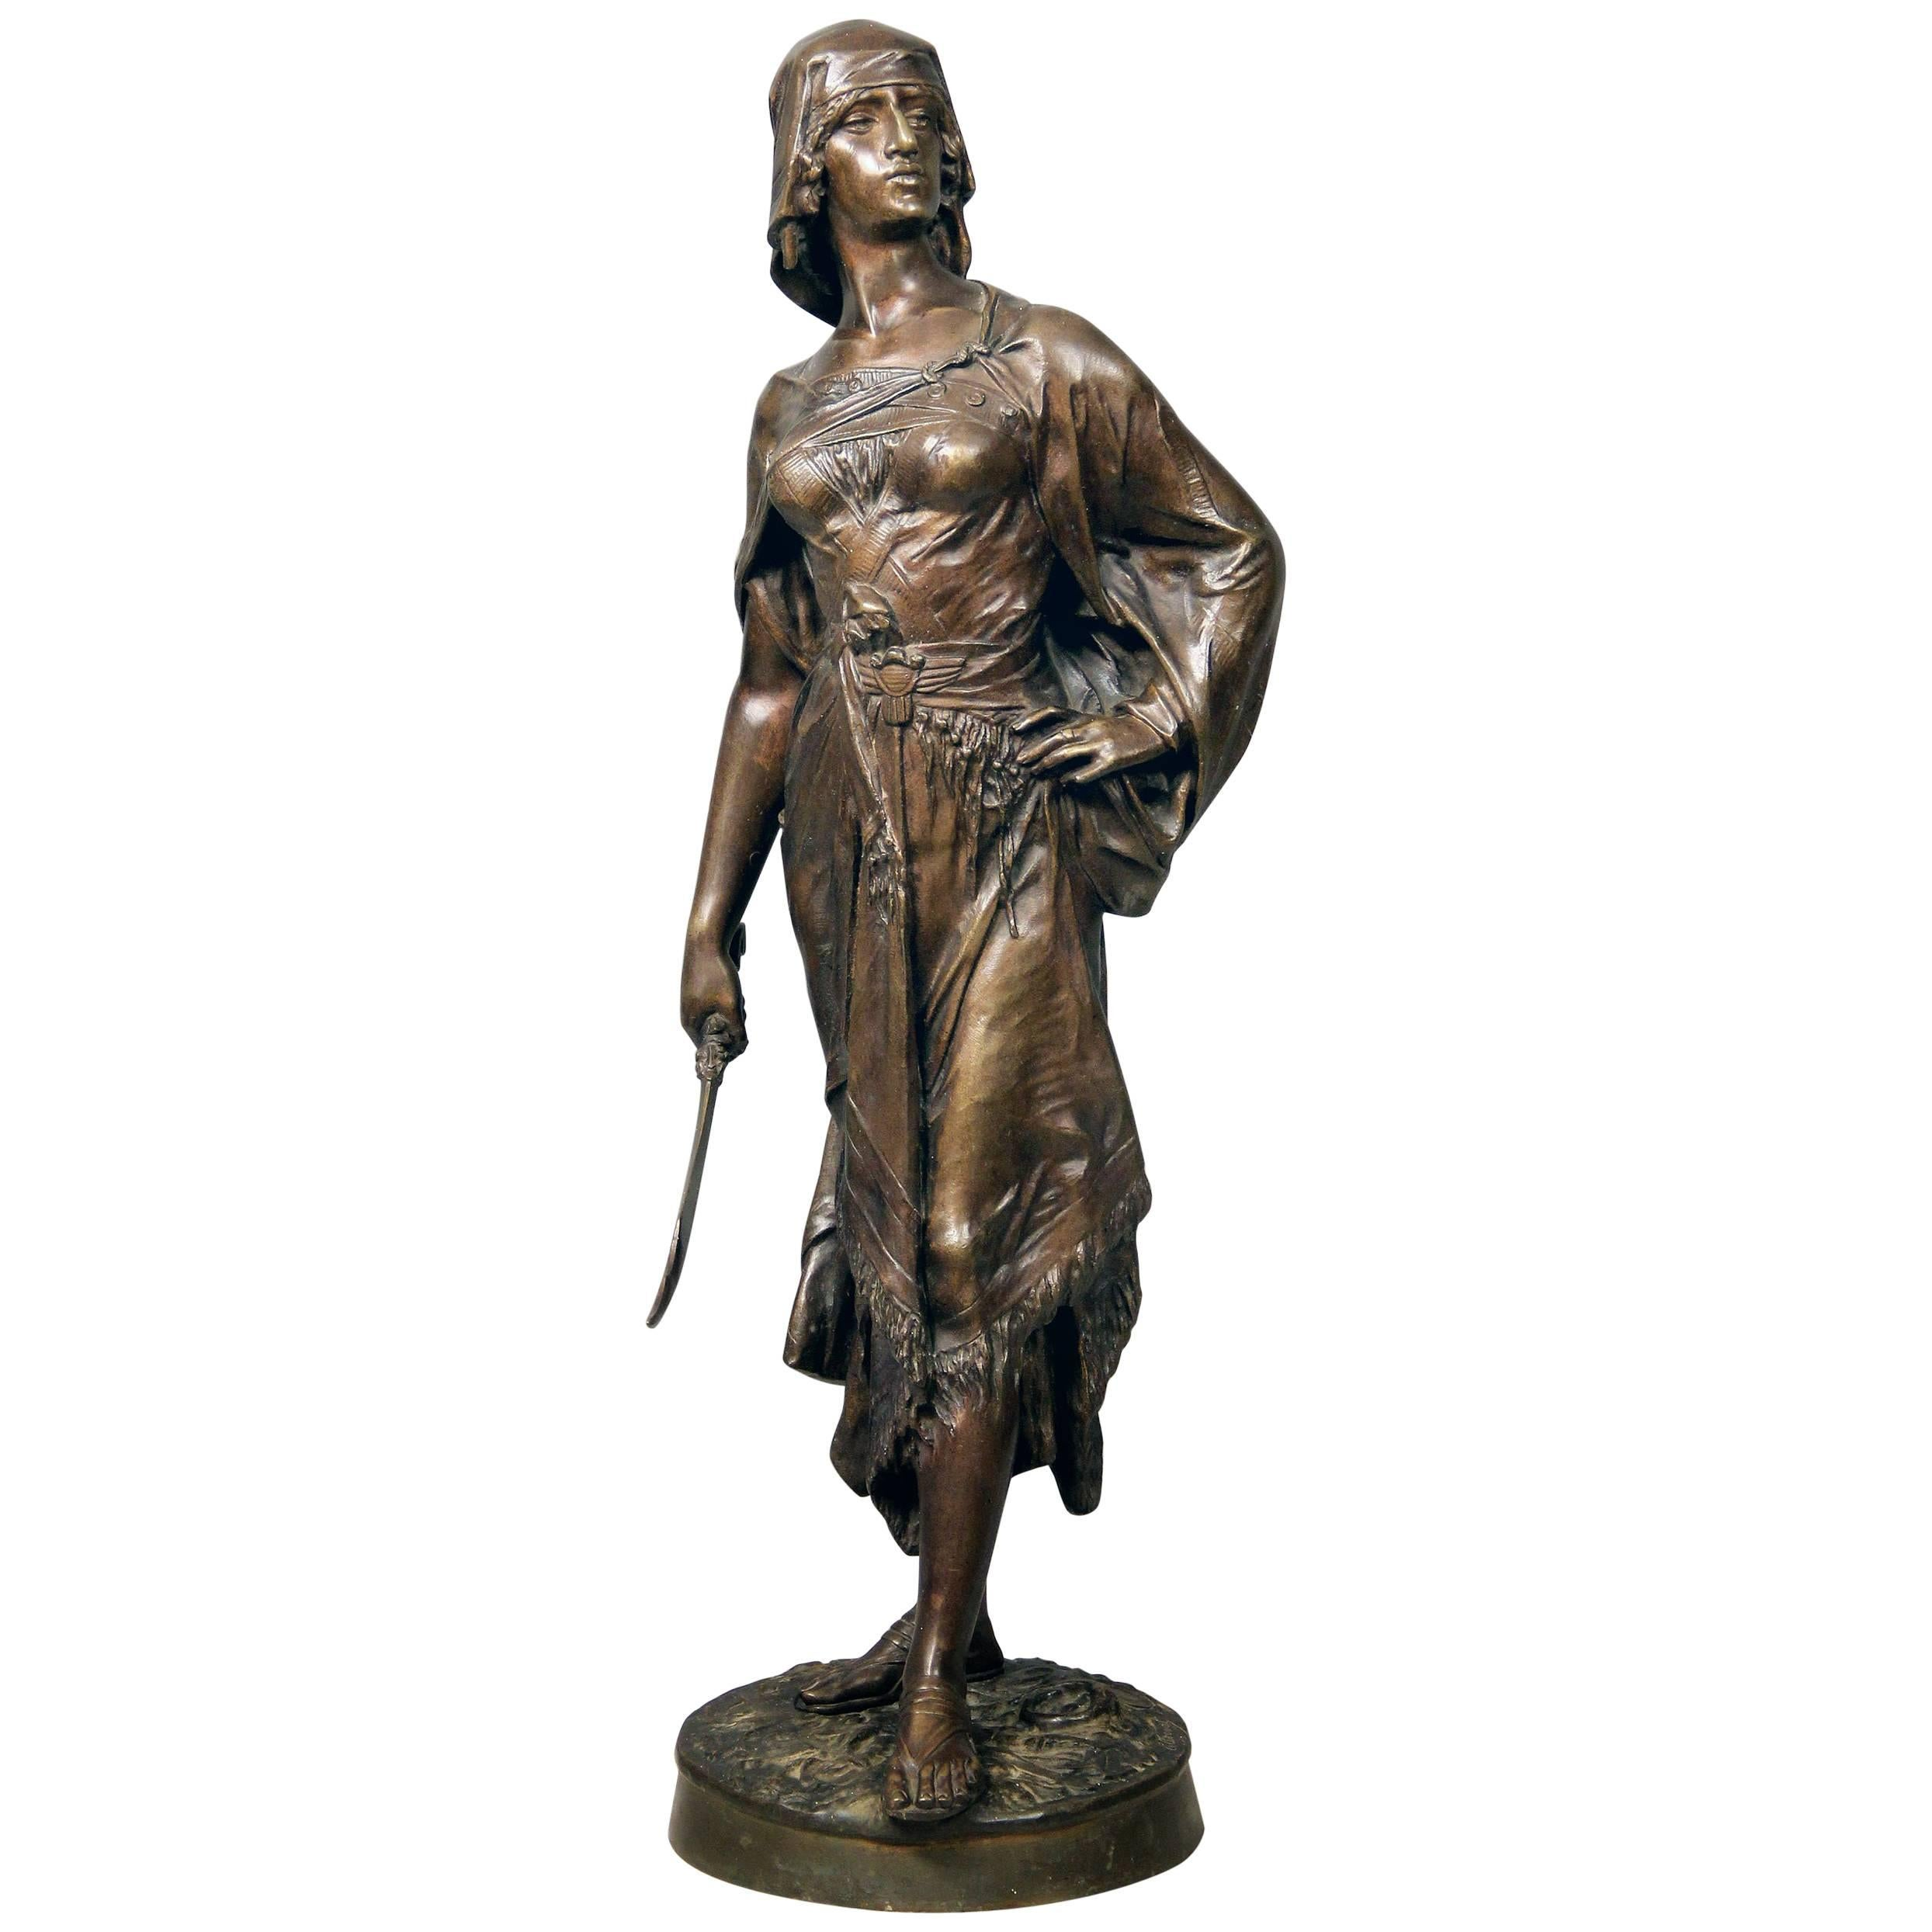 Late 19th Century Bronze Sculpture of a Female Warrior by E. Drouot